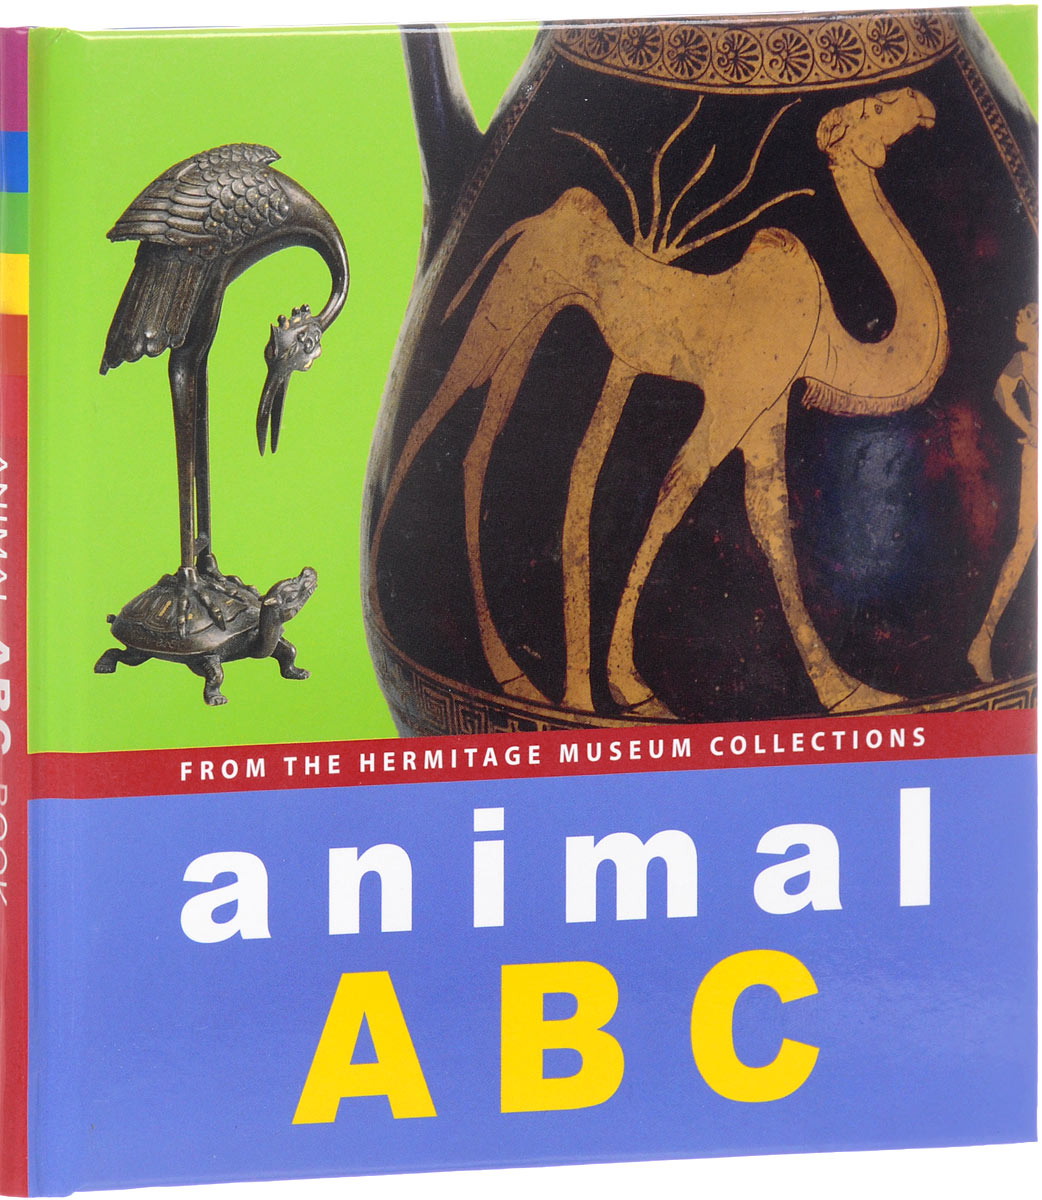 Animal ABC animal abc book from the state hermitage museum collection